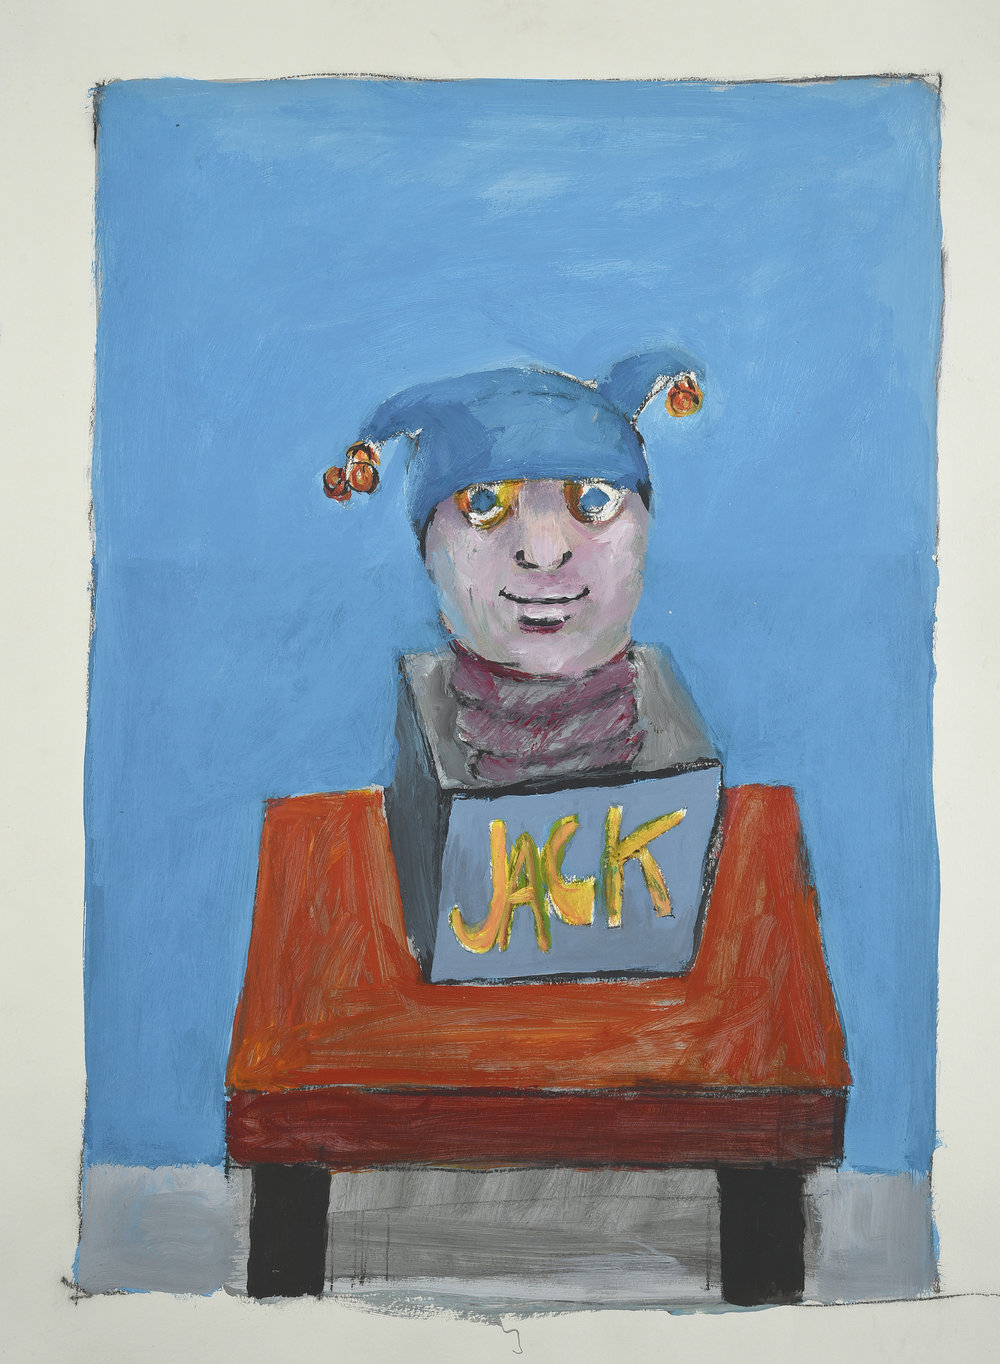 Jack, 1989. Acrylic on paper, 33 x 20 in. (84  x 56 cm.)